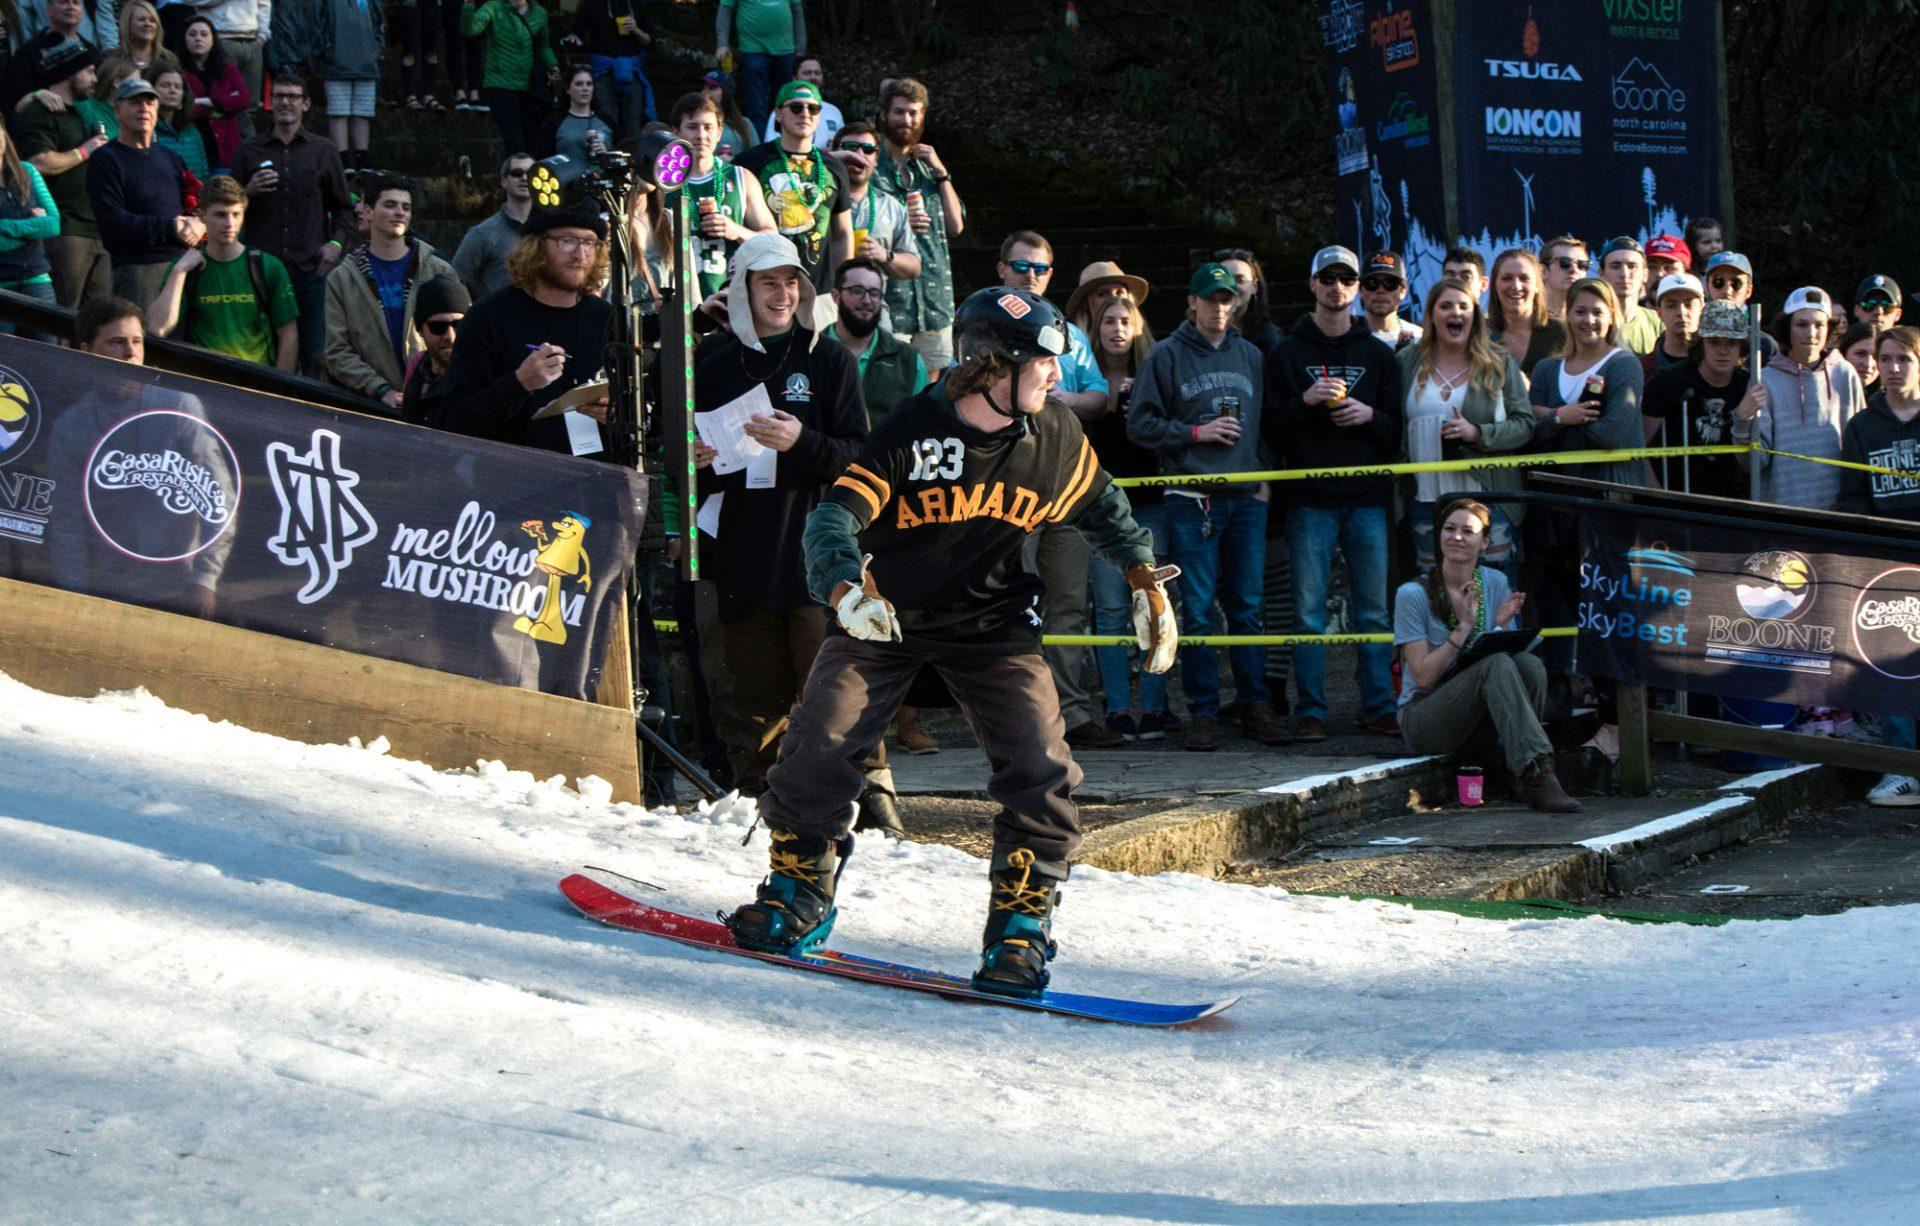 A snowboarder speeds down the slope and prepares to jump.